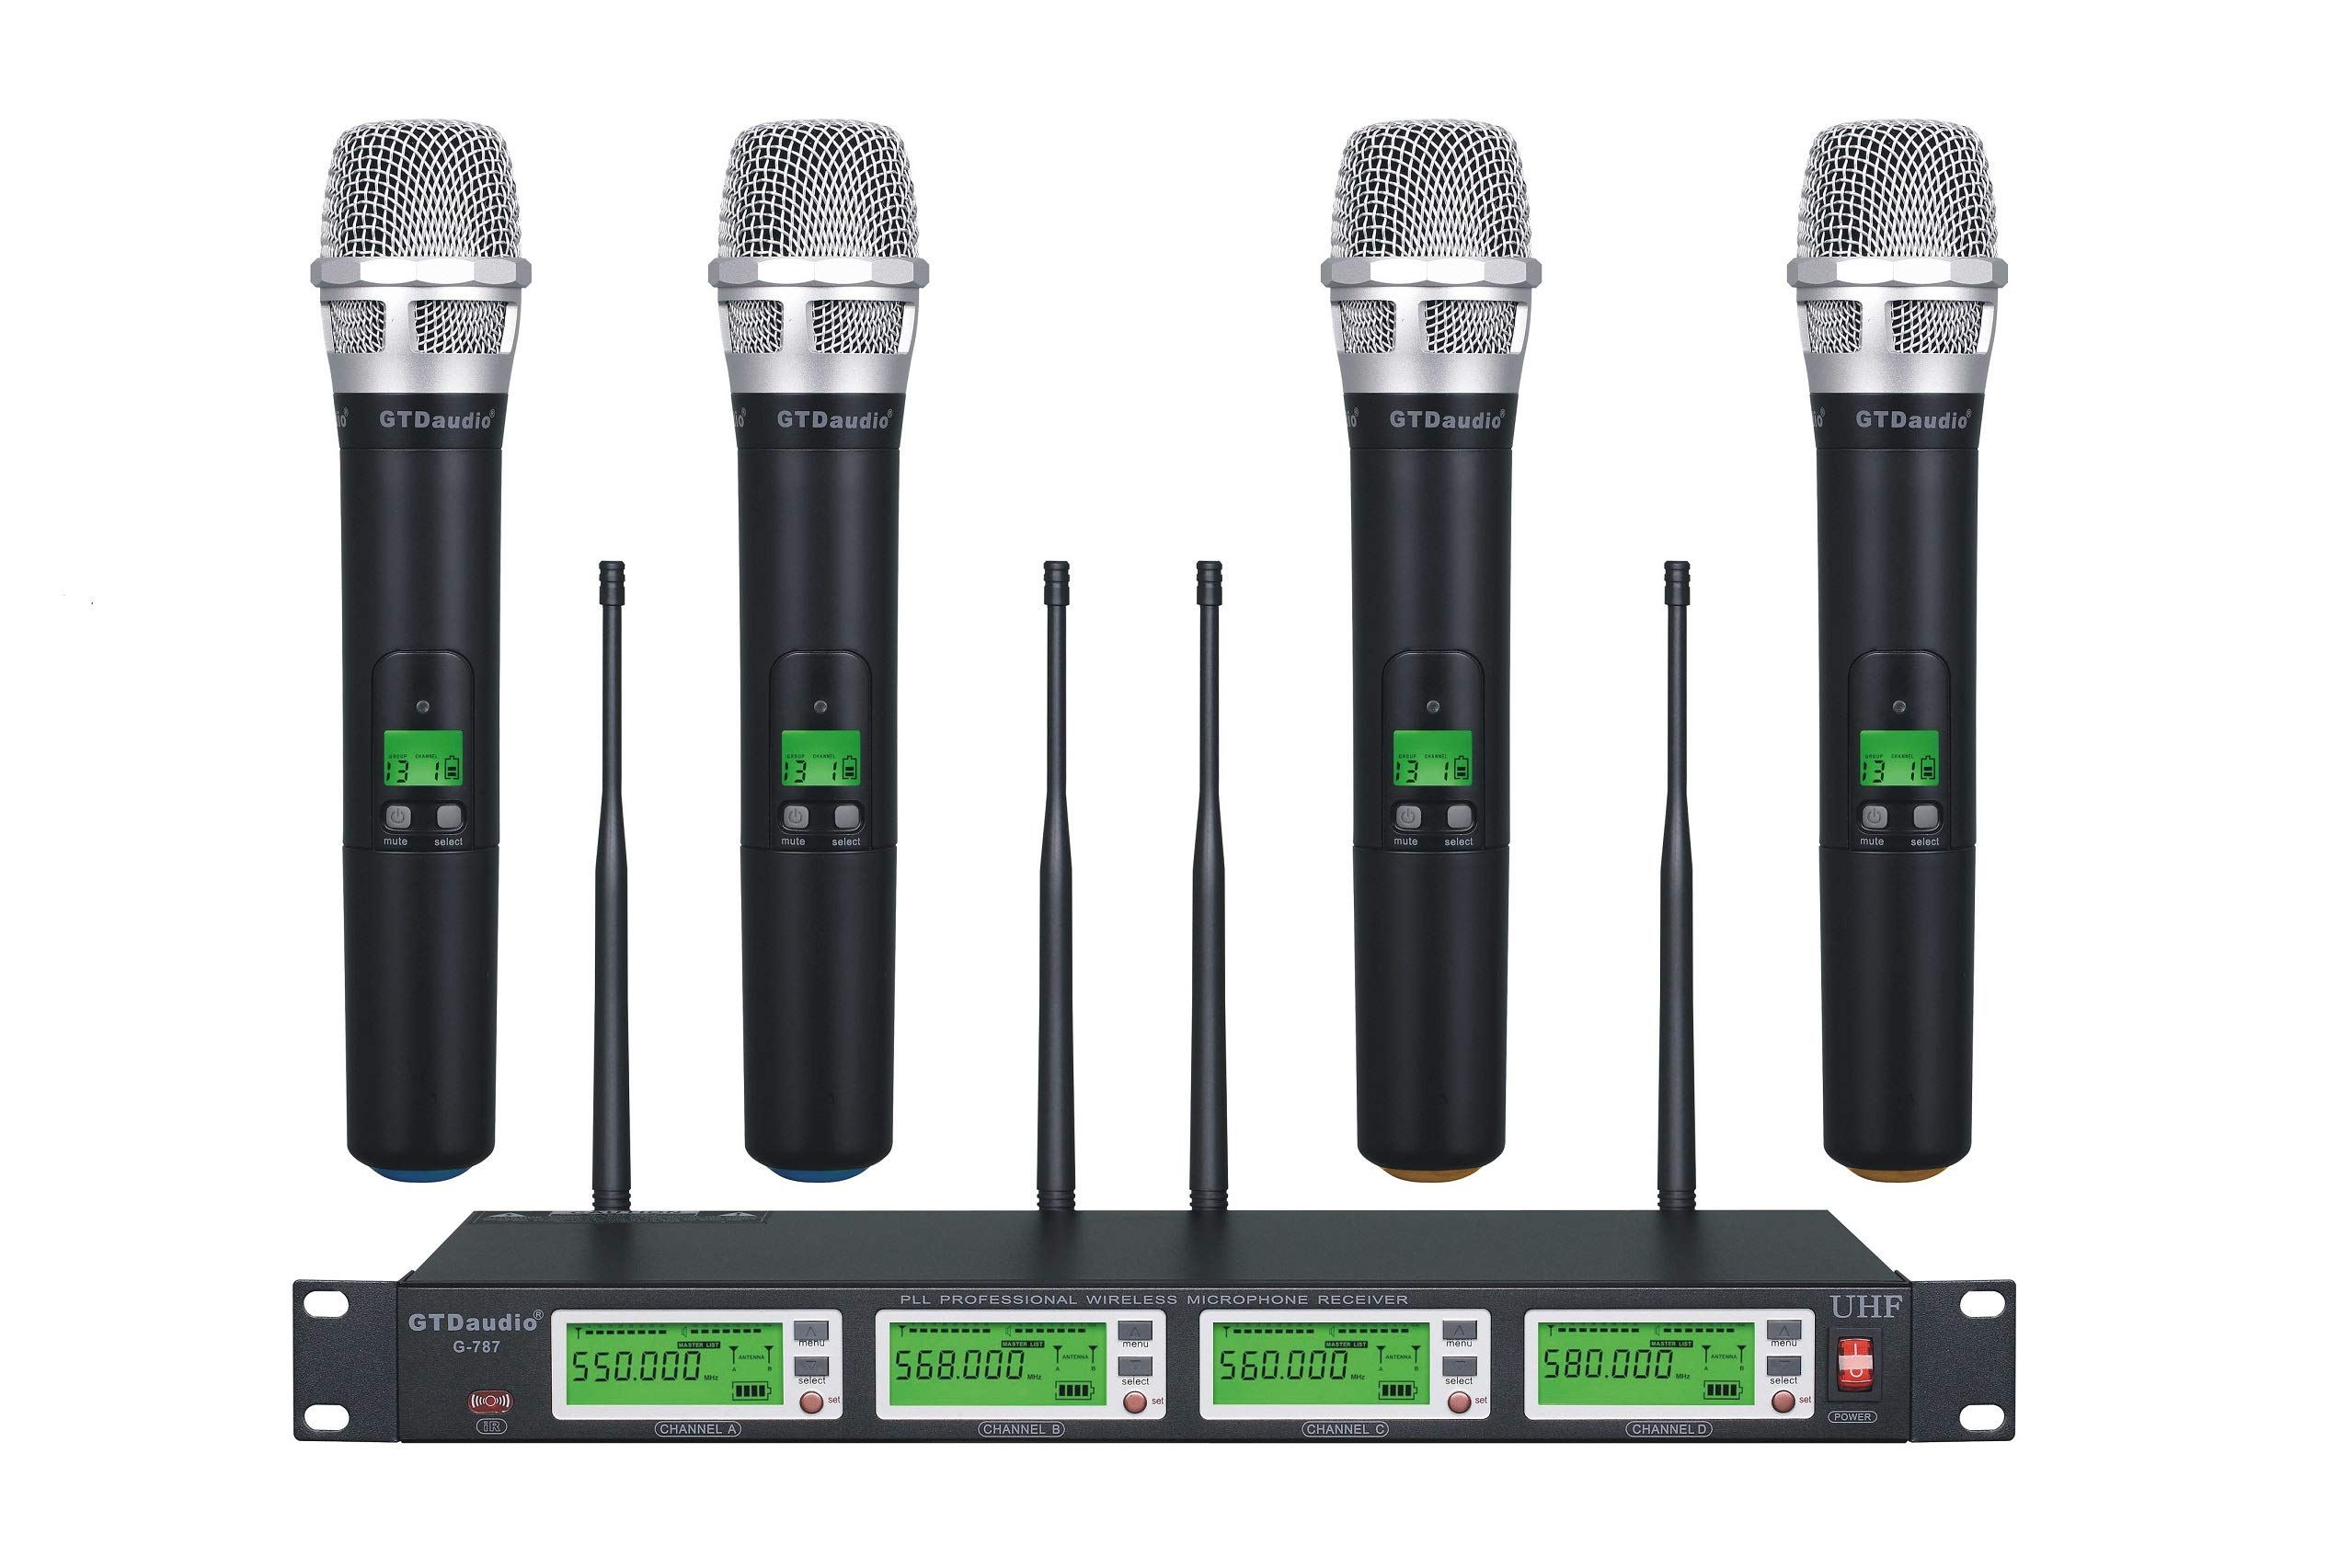 GTD Audio 4x800 Selectable Frequency Channel UHF Diversity Wireless Handheld Microphone Mic System 787 (4 Hand held Mics) by GTDaudio